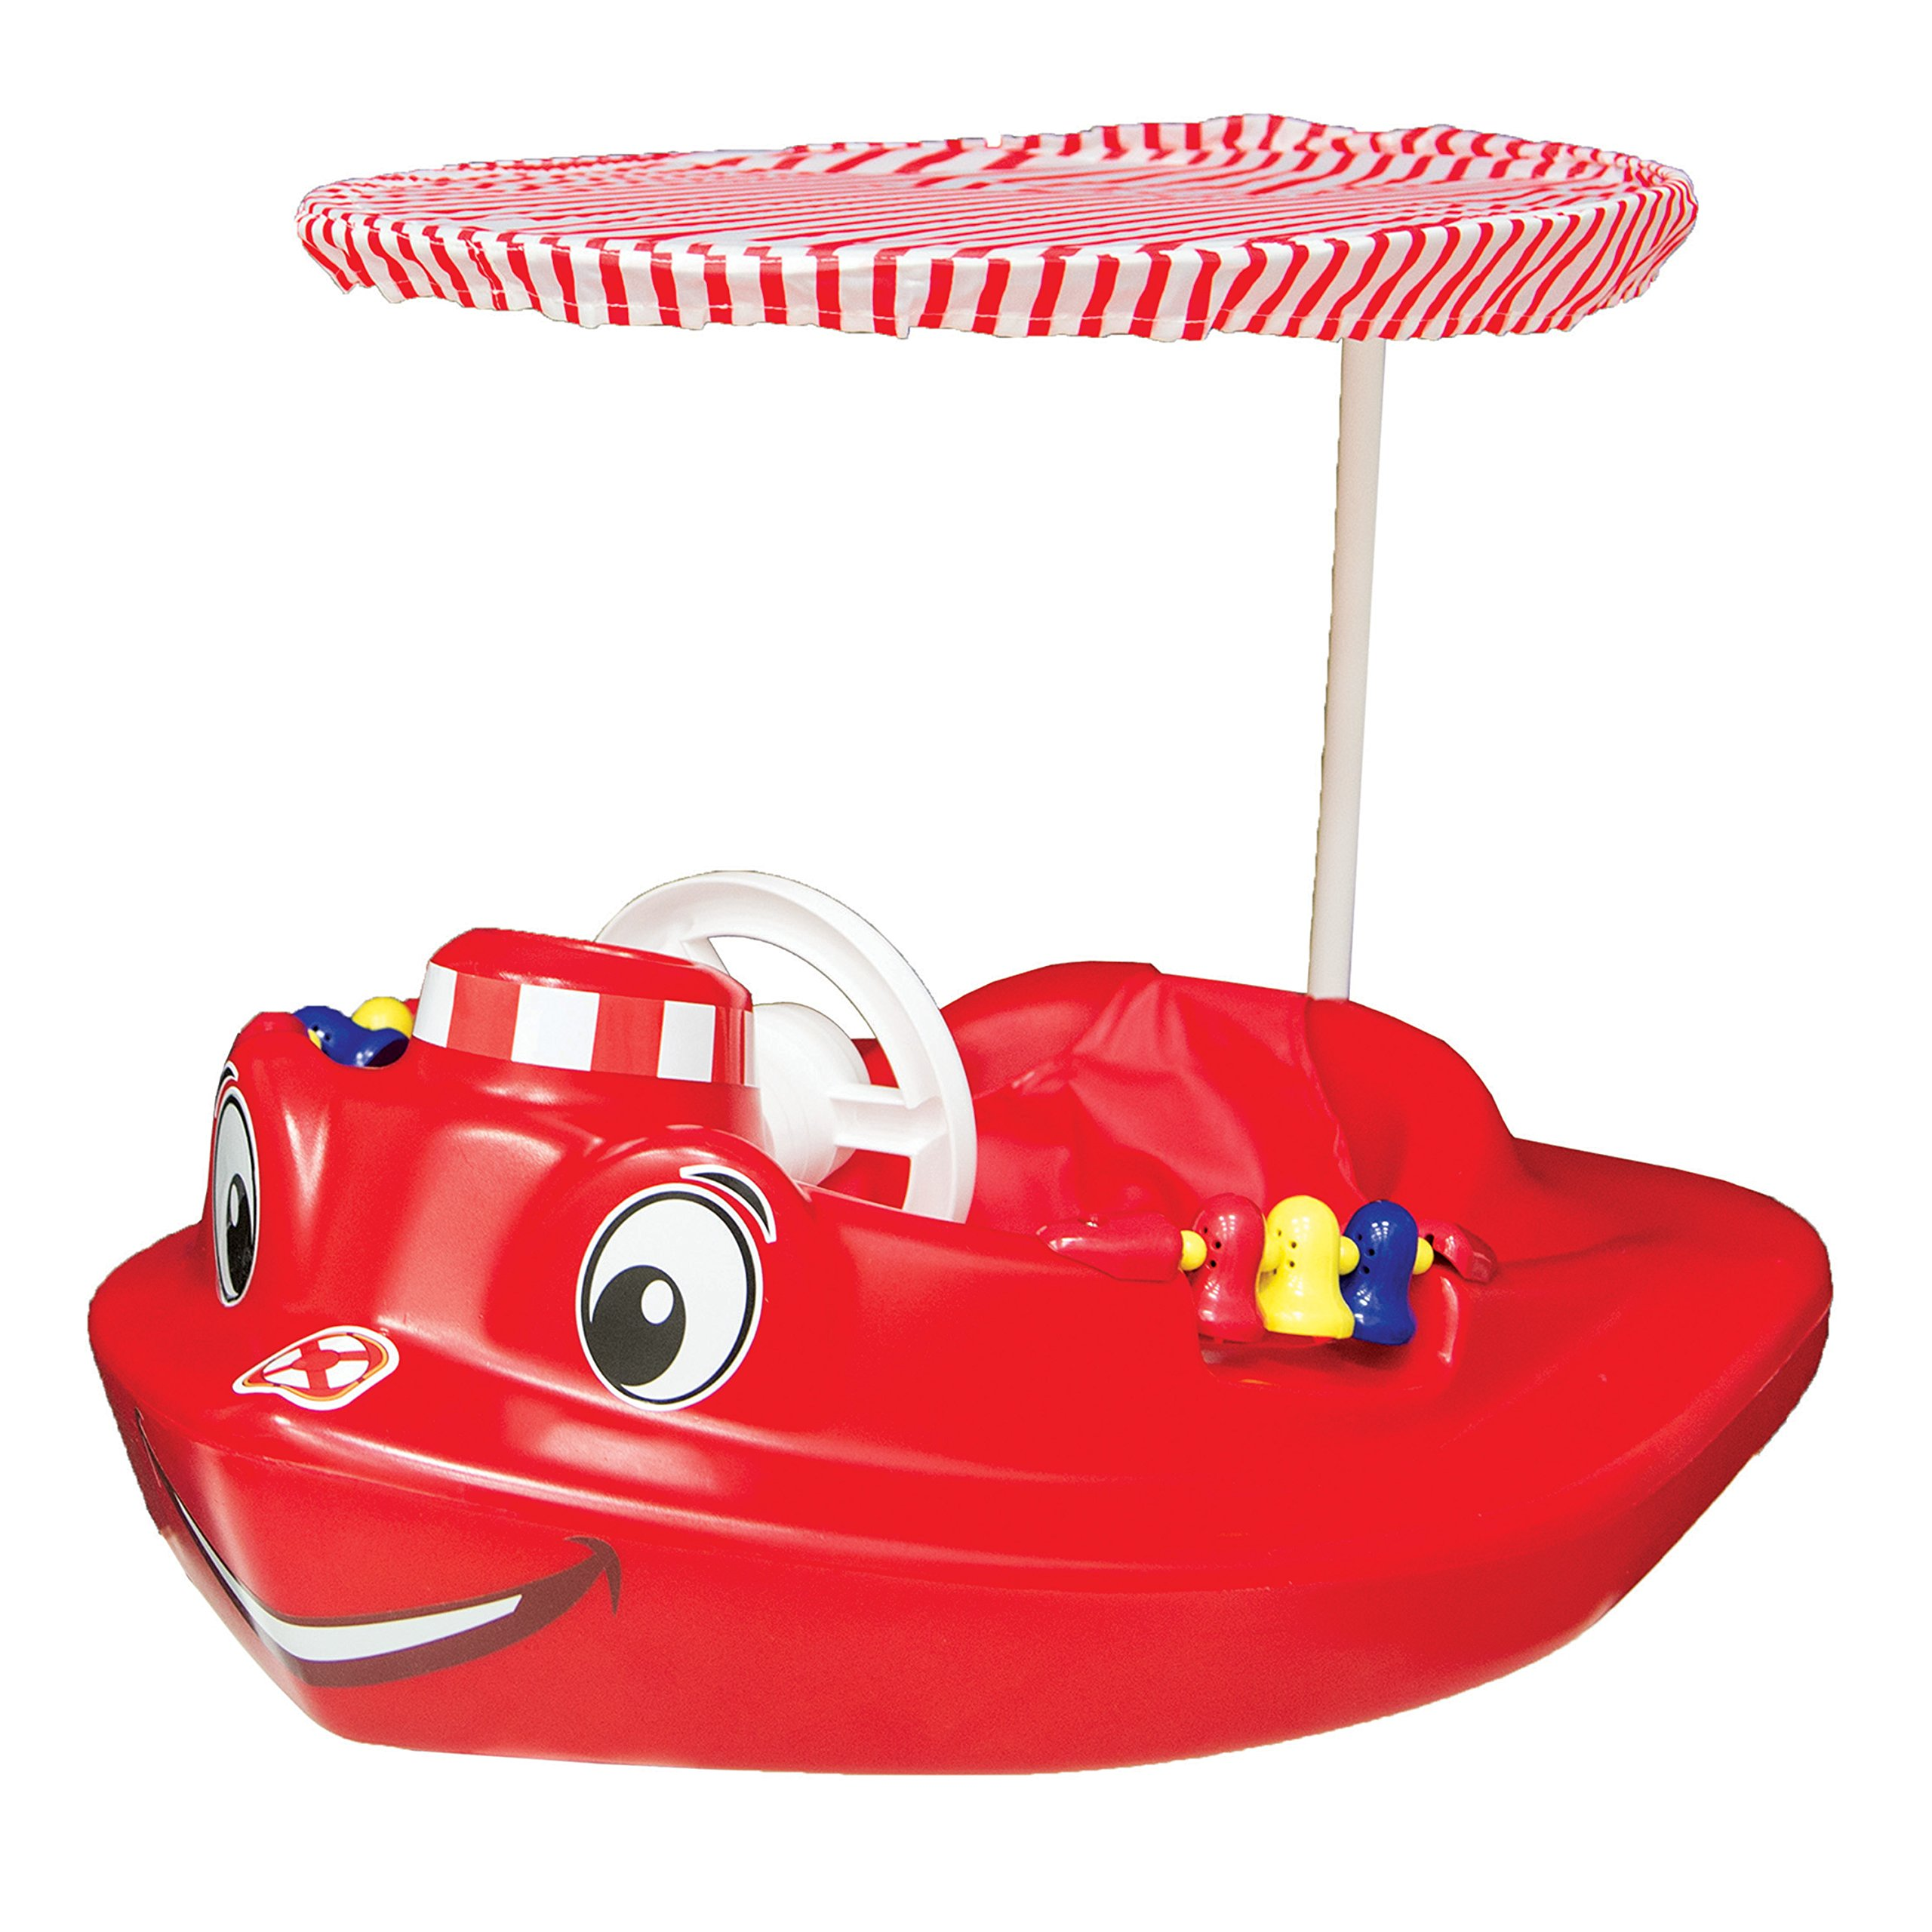 SwimWays Baby Tug Boat Plastic Float with Removeable Sun Canopy by SwimWays